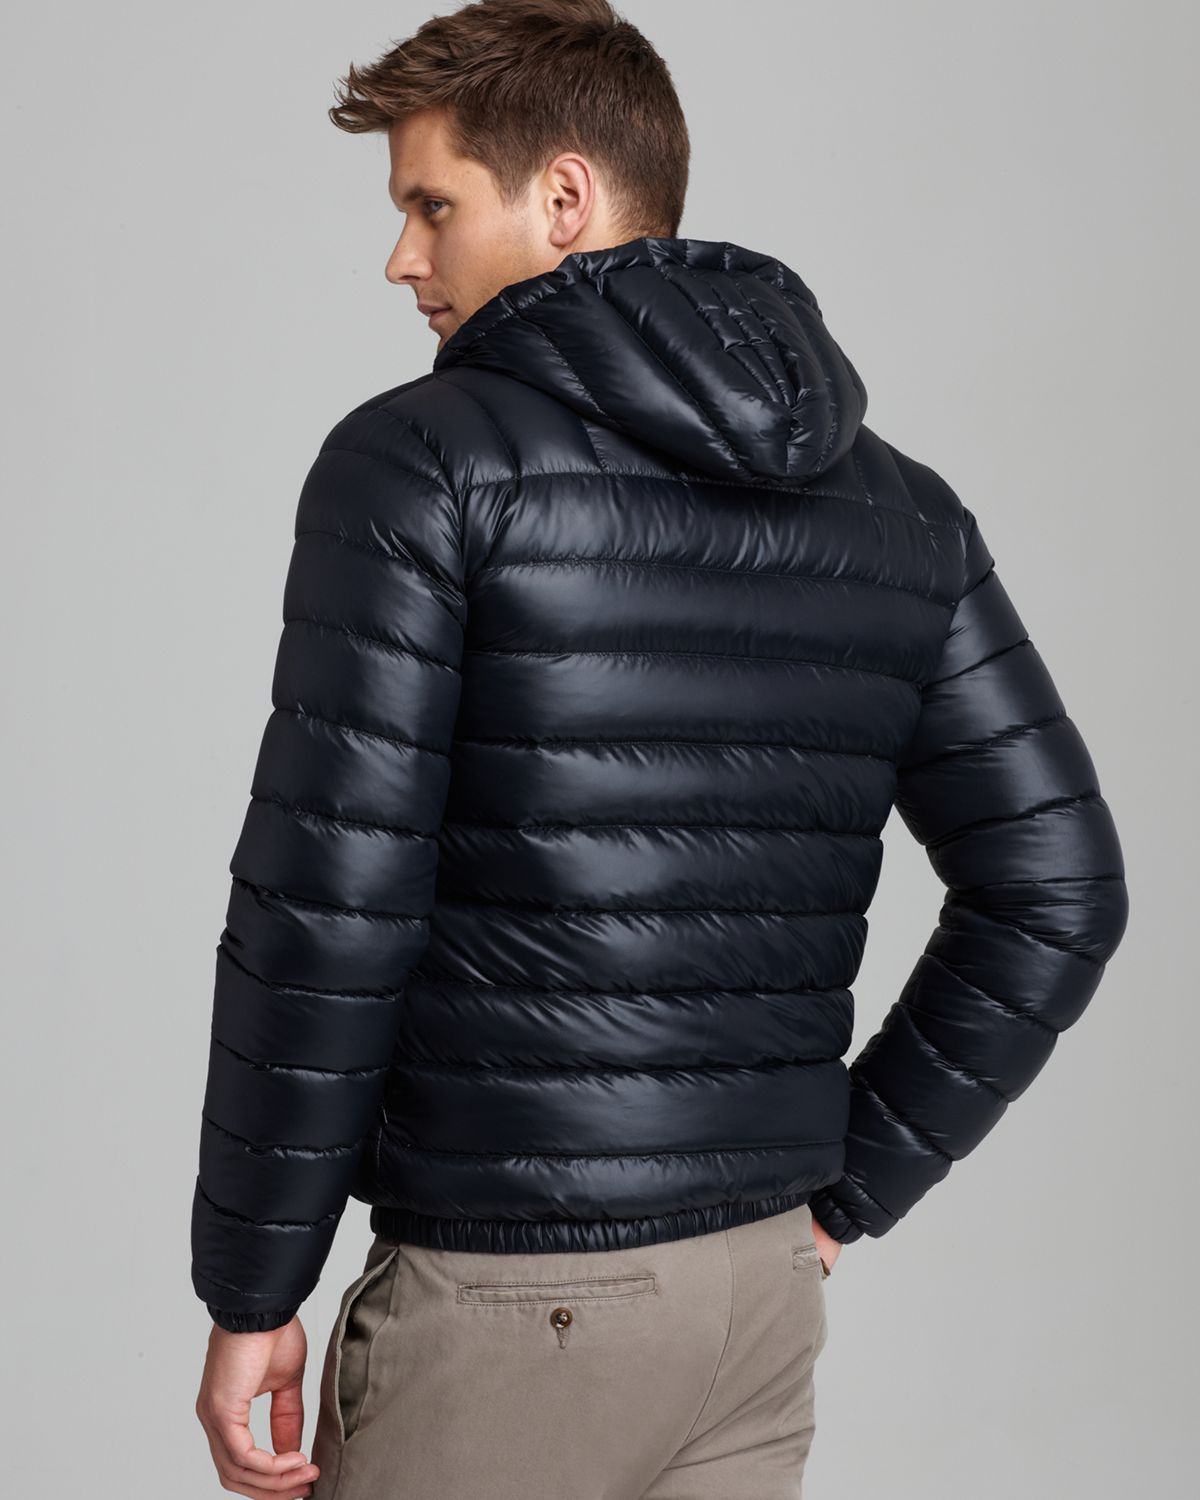 95ba70dd0 Lyst - Lacoste Featherweight Packable Down Jacket in Black for Men